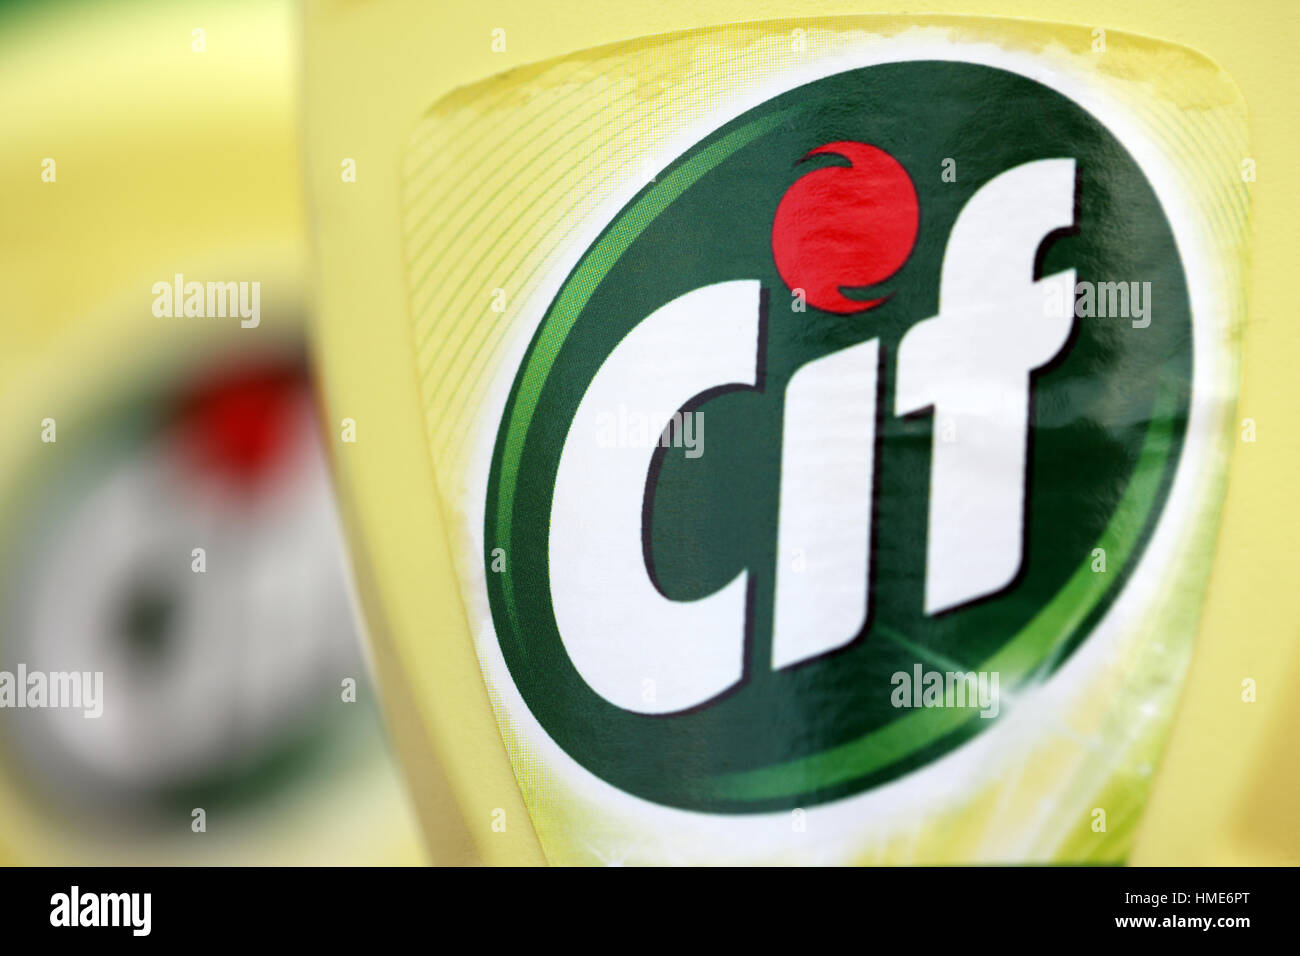 Cif cleaning product - Stock Image